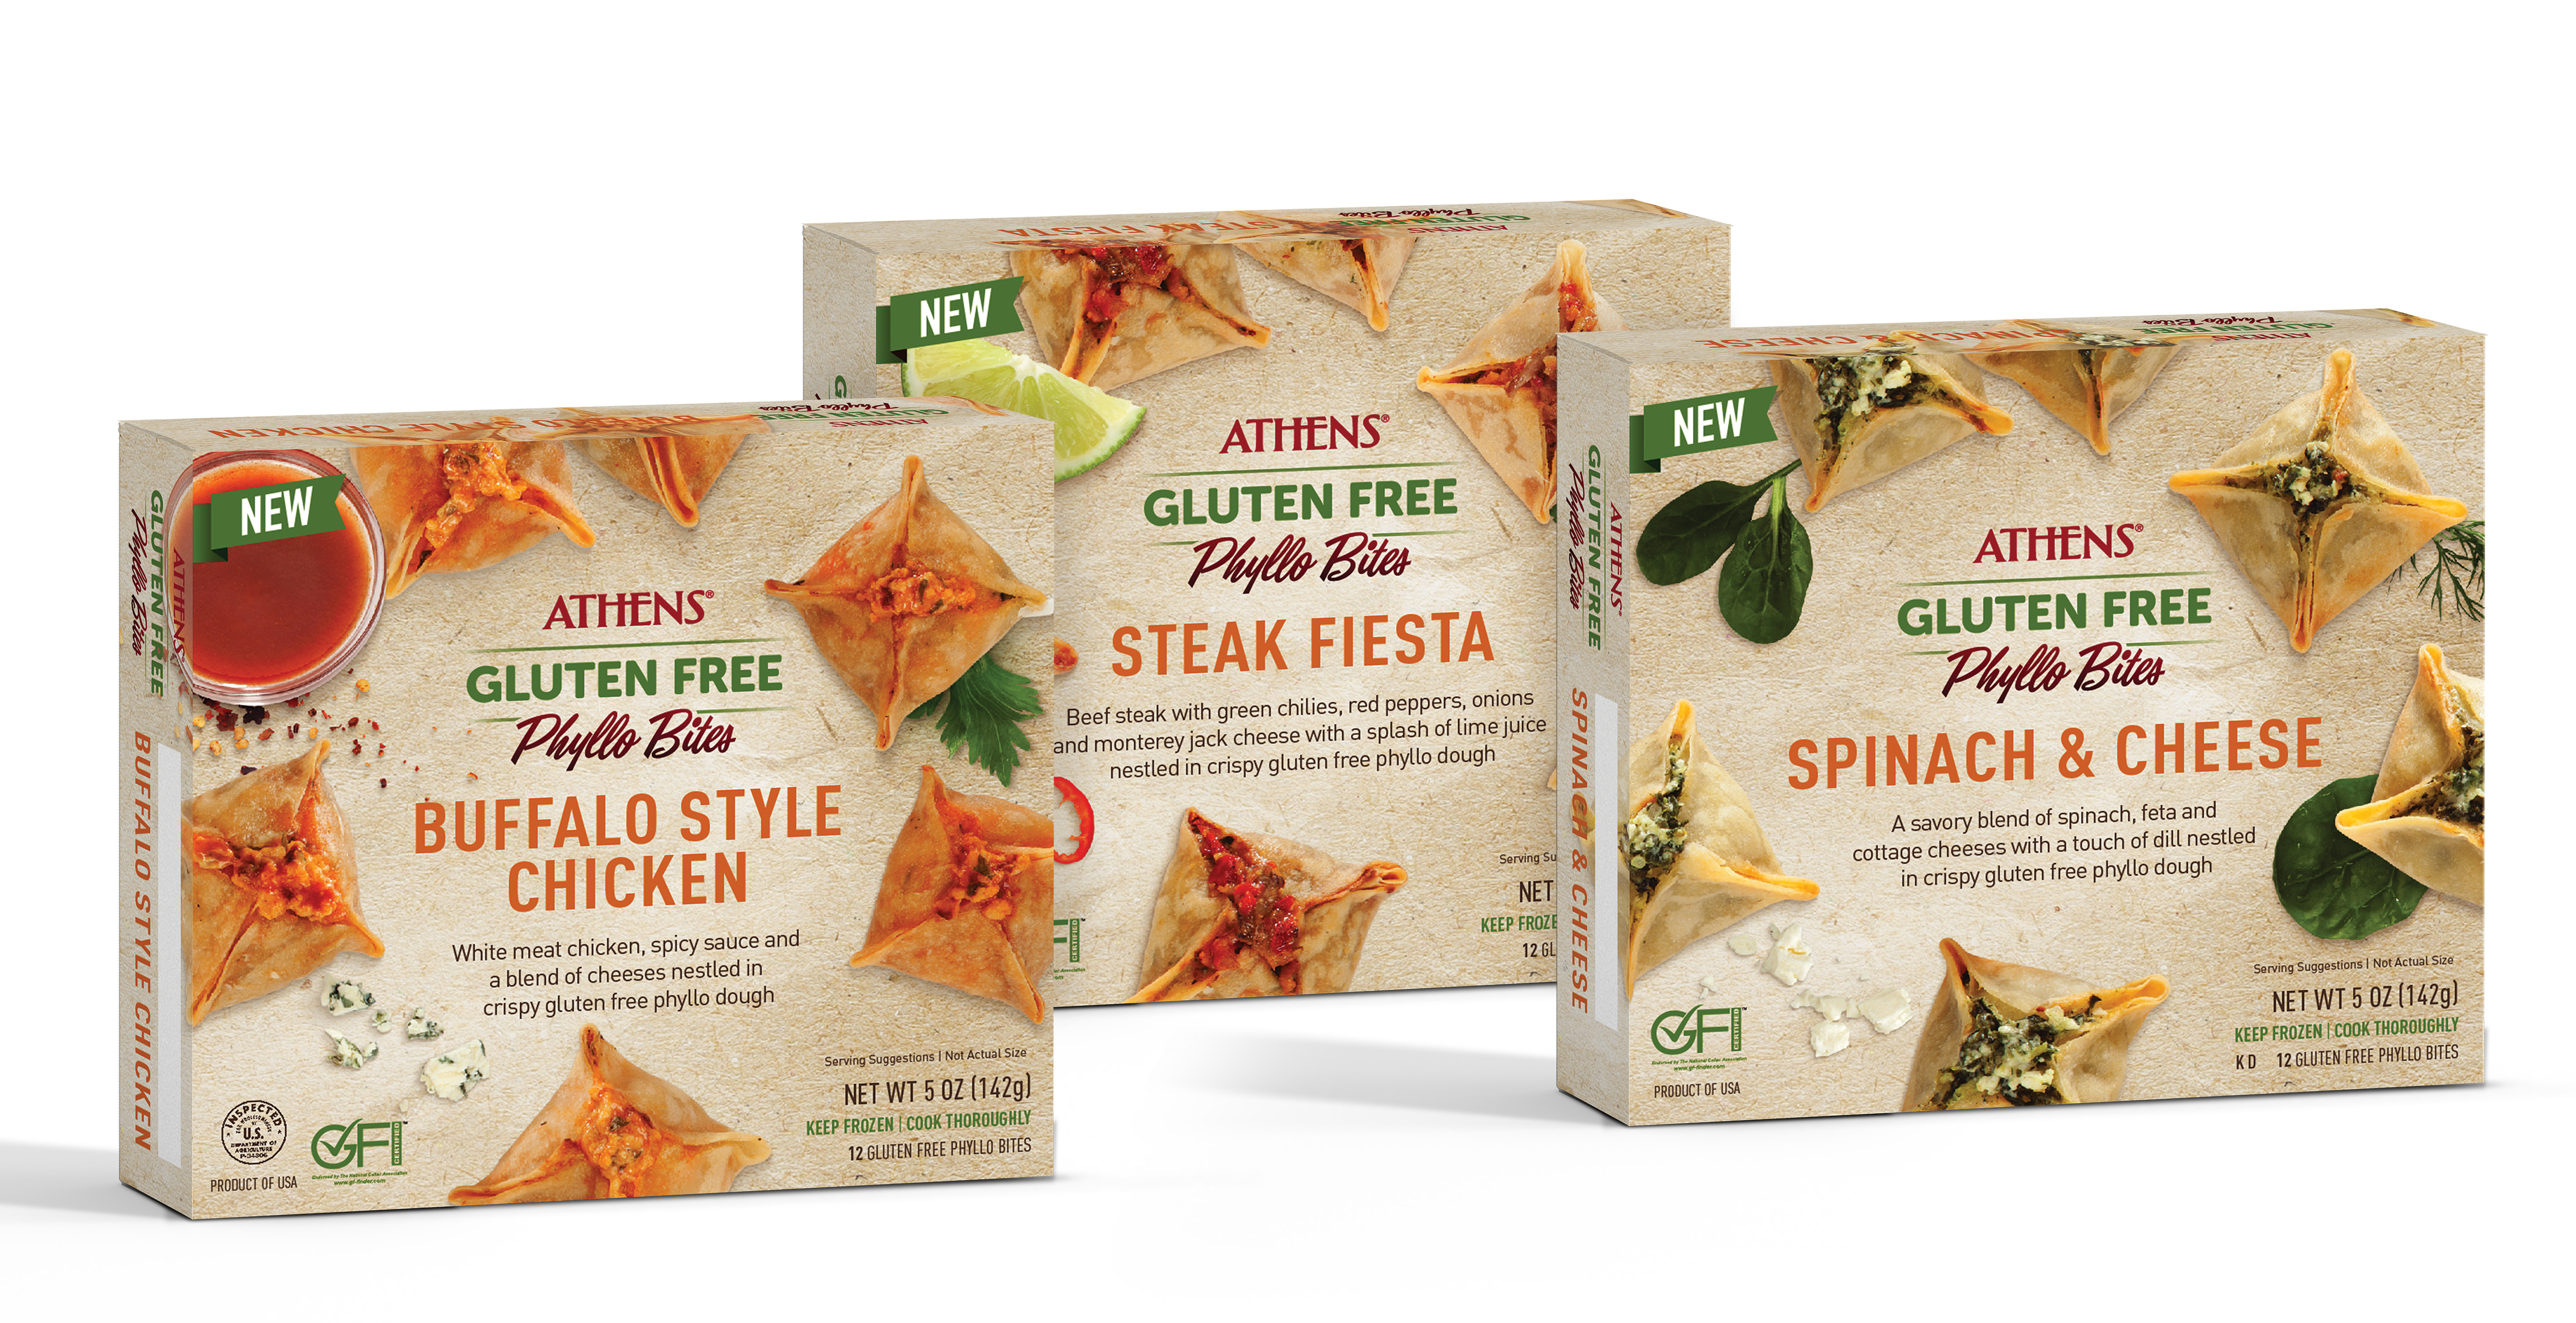 Athens Foods Launches Gluten Free Frozen Phyllo Bites